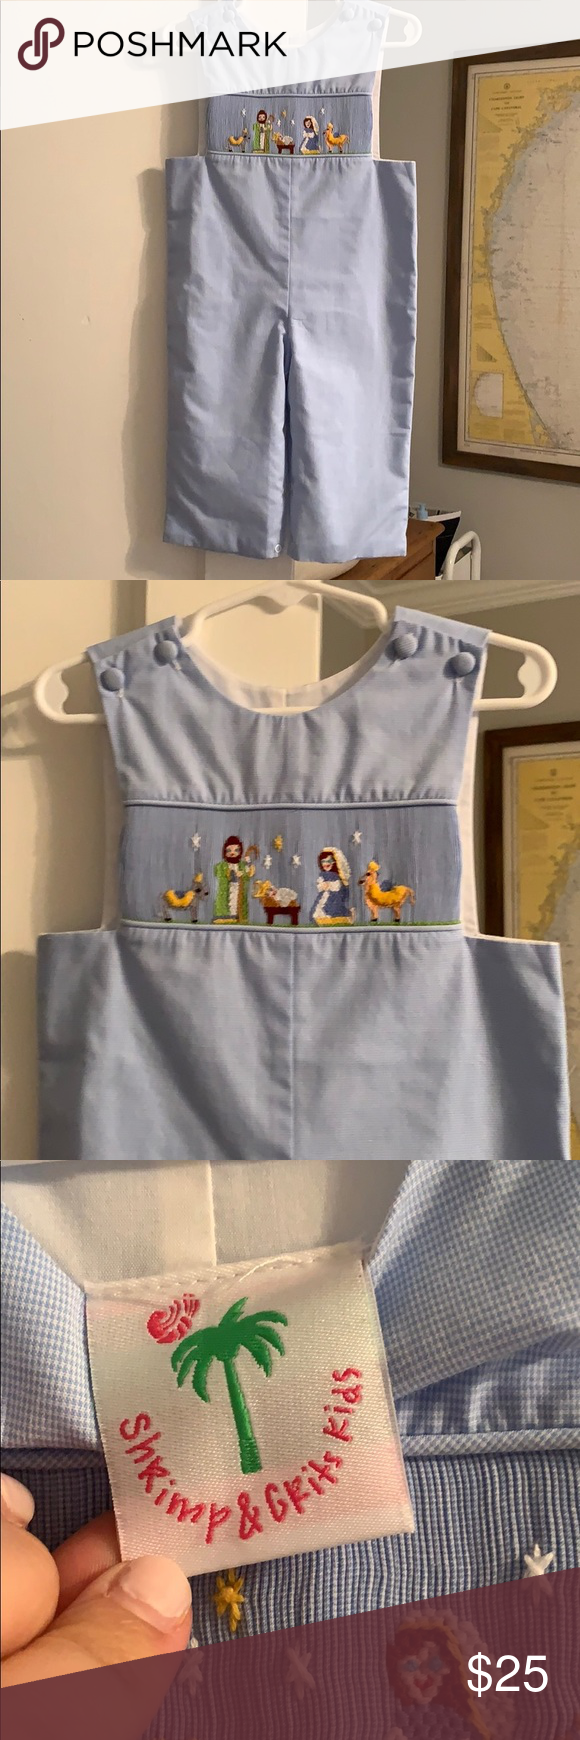 Shrimp and Grits Kids Longall Long romper longall, light blue, smocked Nativity Scene. EUC. By Sheimp and Grits Kids. Shrimp and Grits Bottoms Overalls #shrimpandgrits Shrimp and Grits Kids Longall Long romper longall, light blue, smocked Nativity Scene. EUC. By Sheimp and Grits Kids. Shrimp and Grits Bottoms Overalls #shrimpandgrits